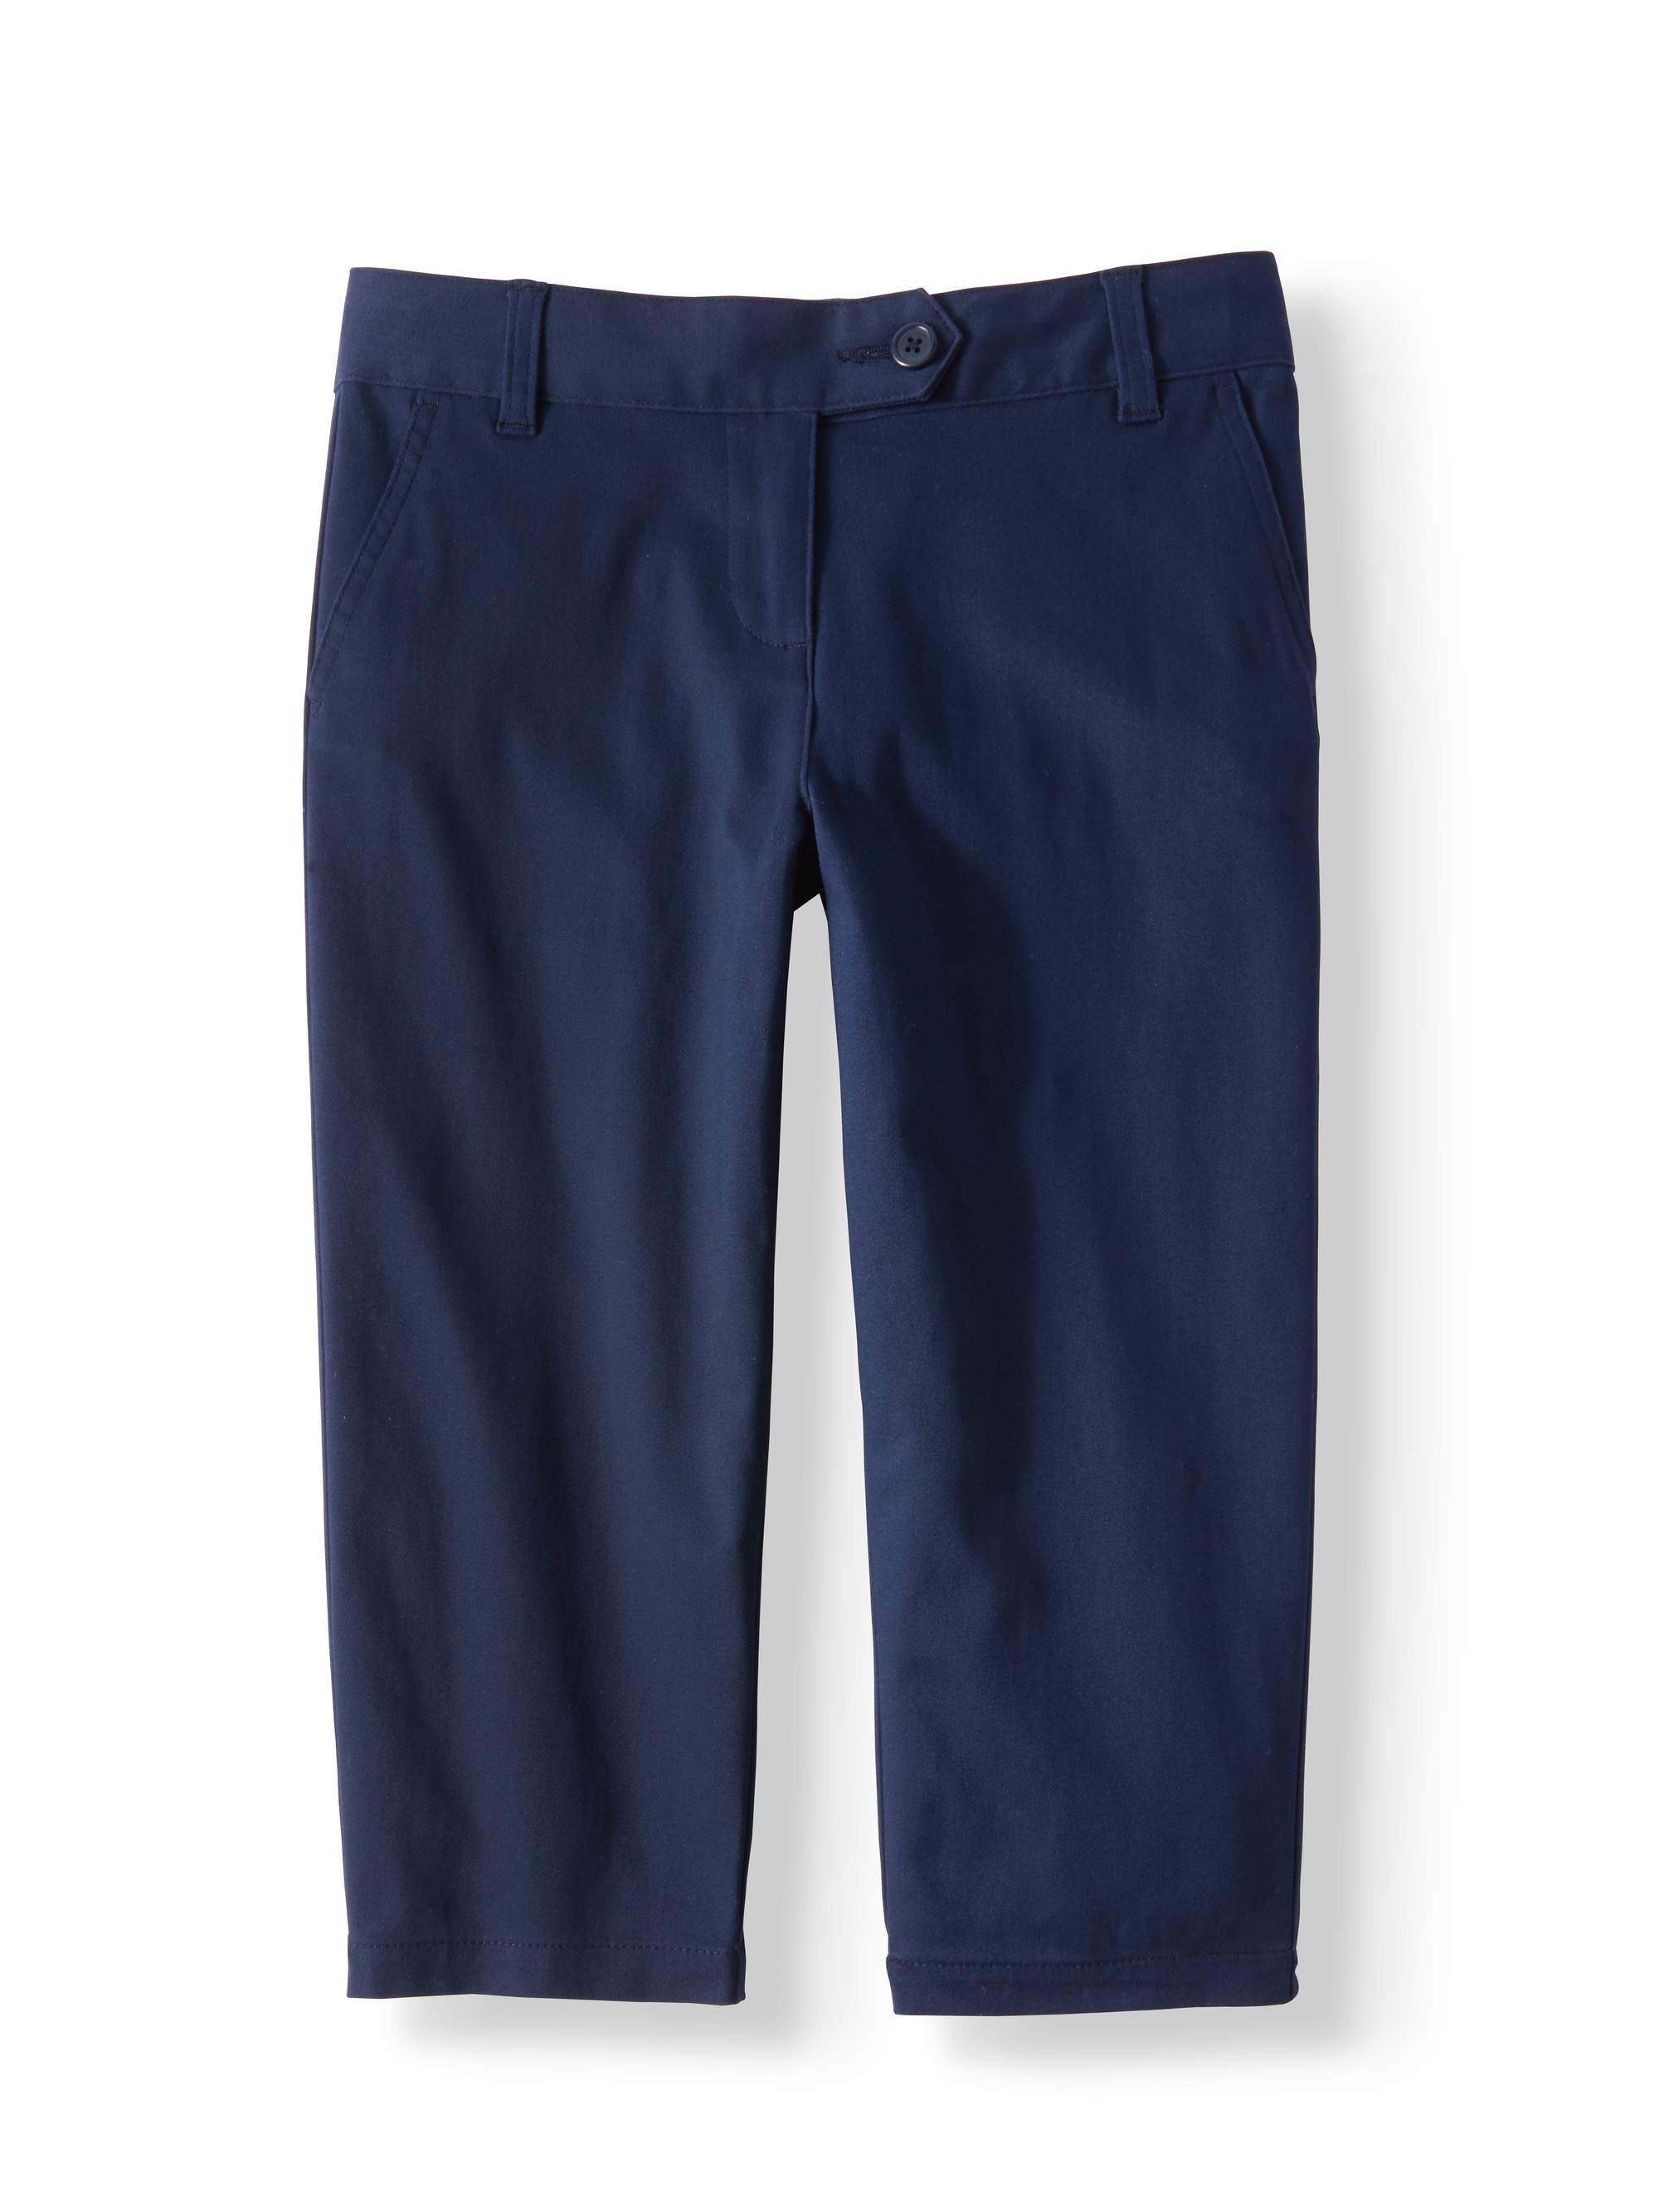 Girls' School Uniform Stretch Twill Capri